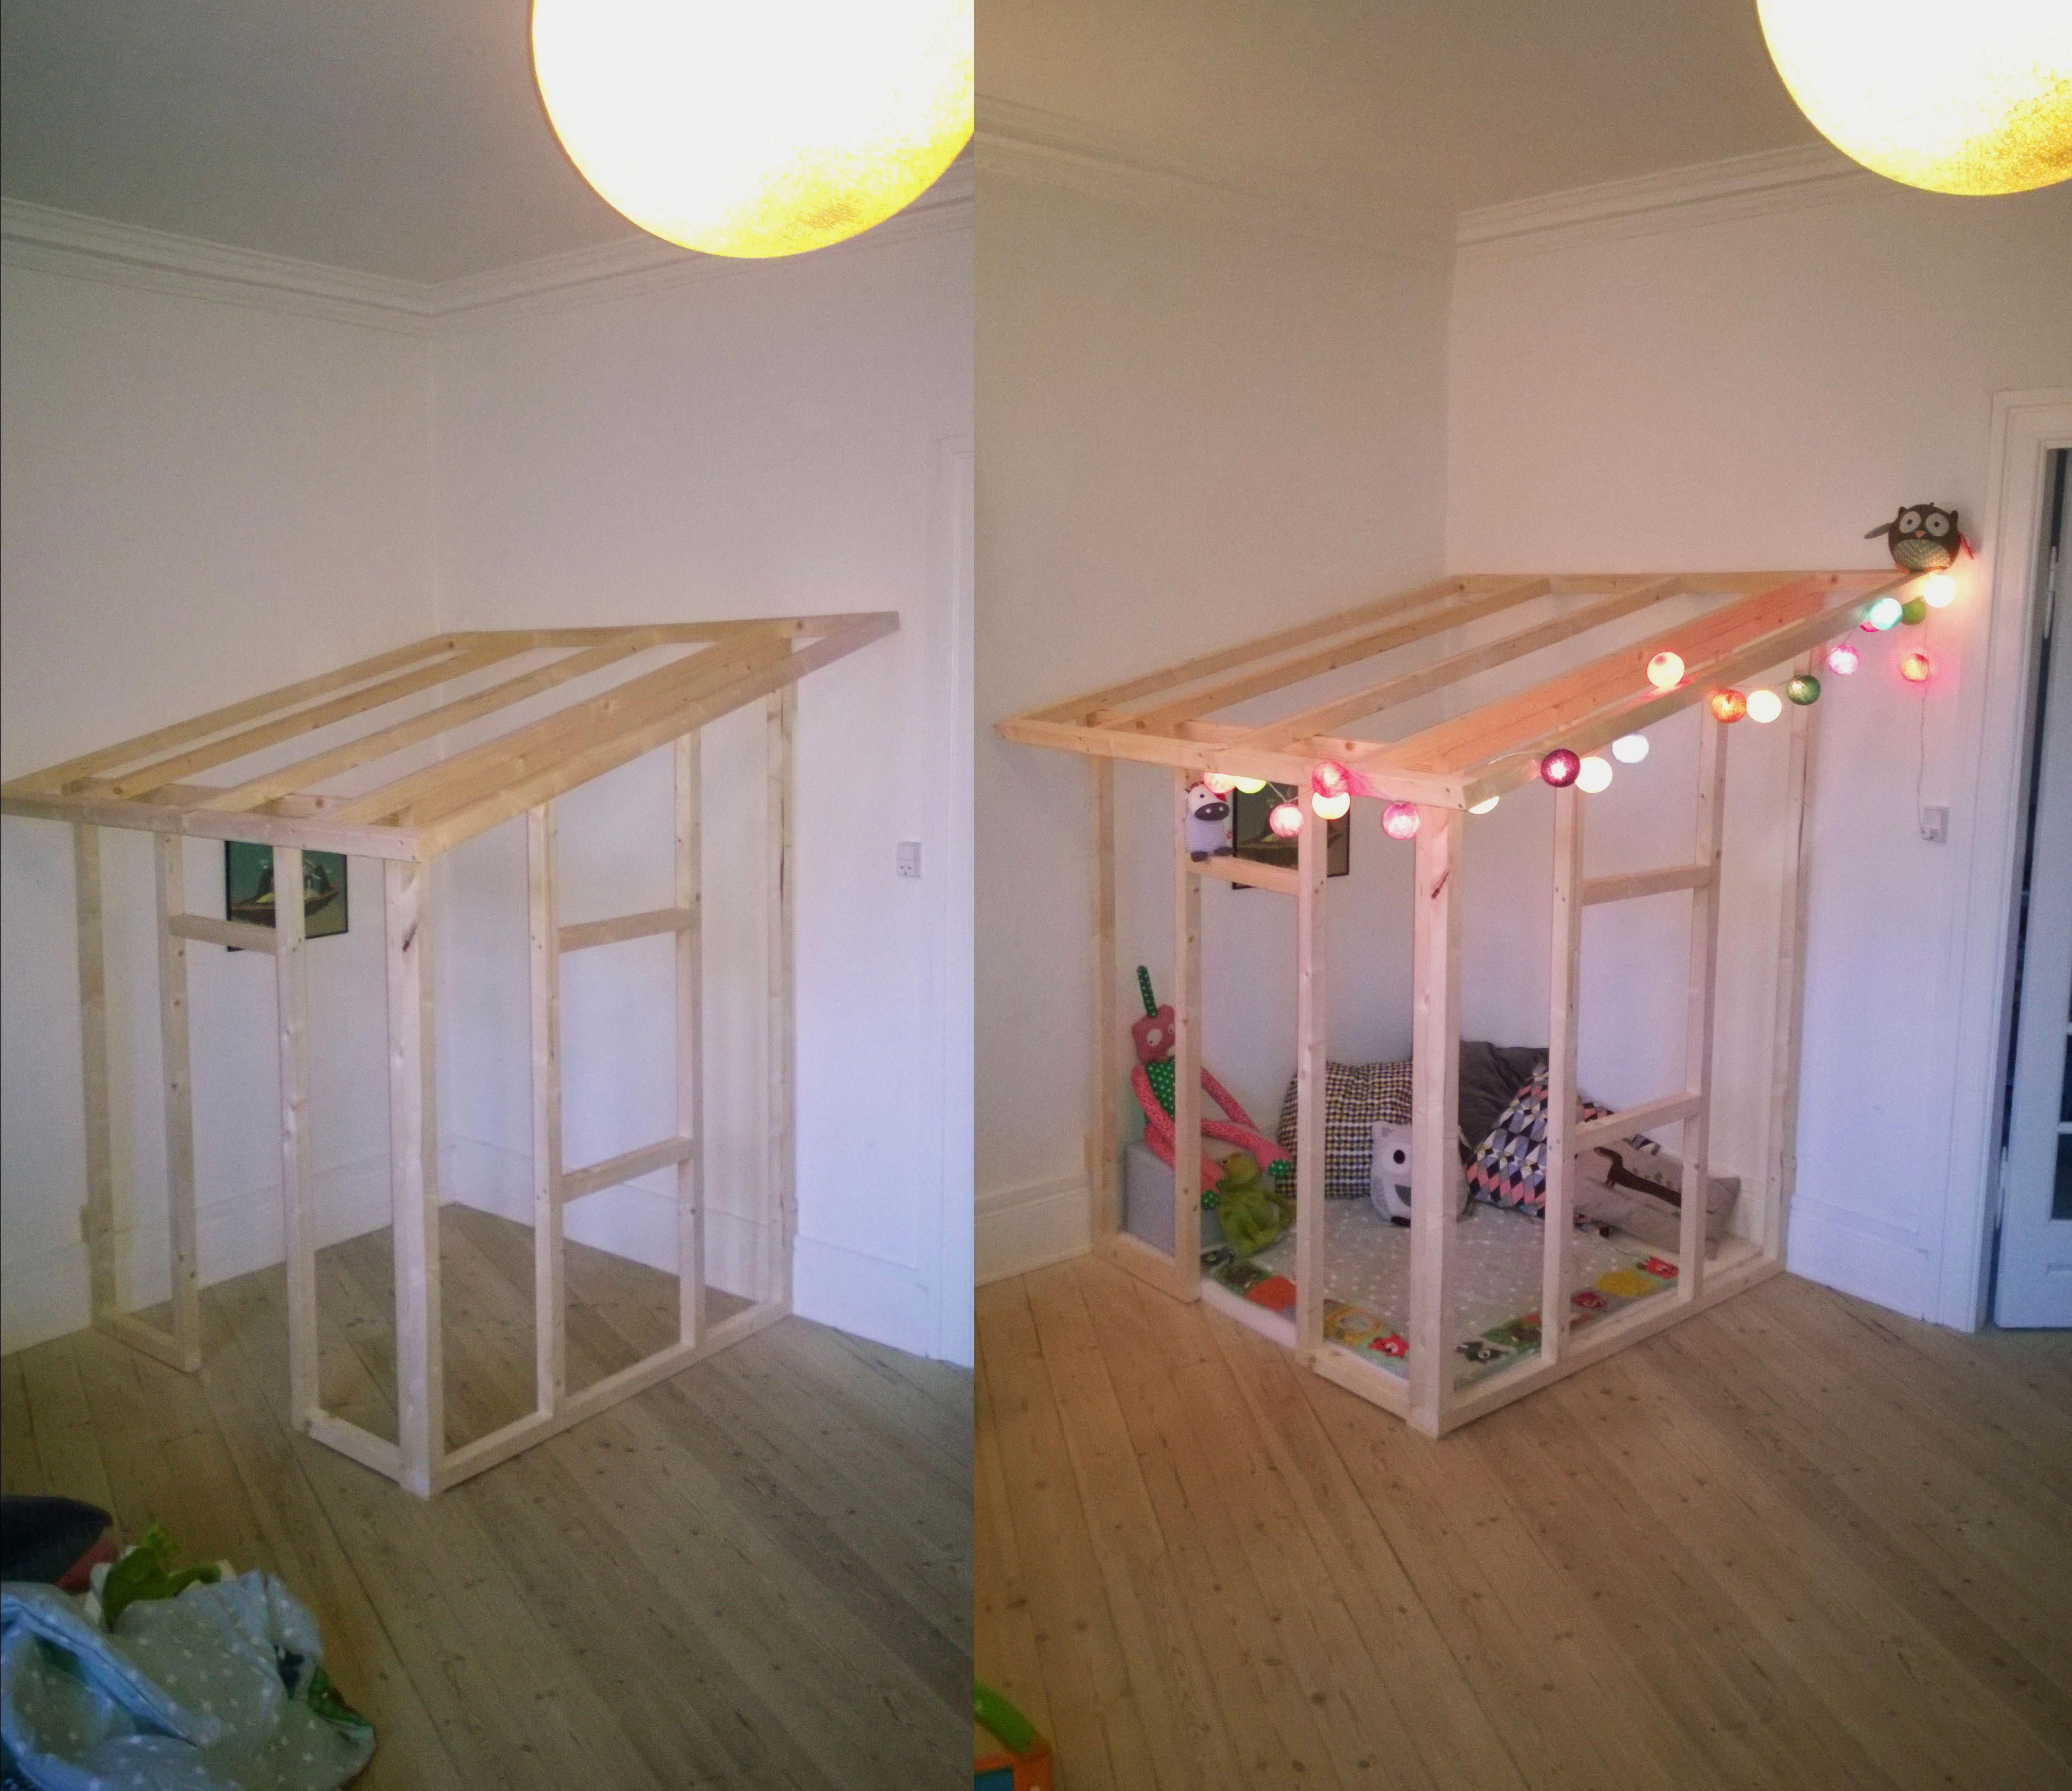 I Made This Wooden Frame Indoor Playhouse For A Friend's